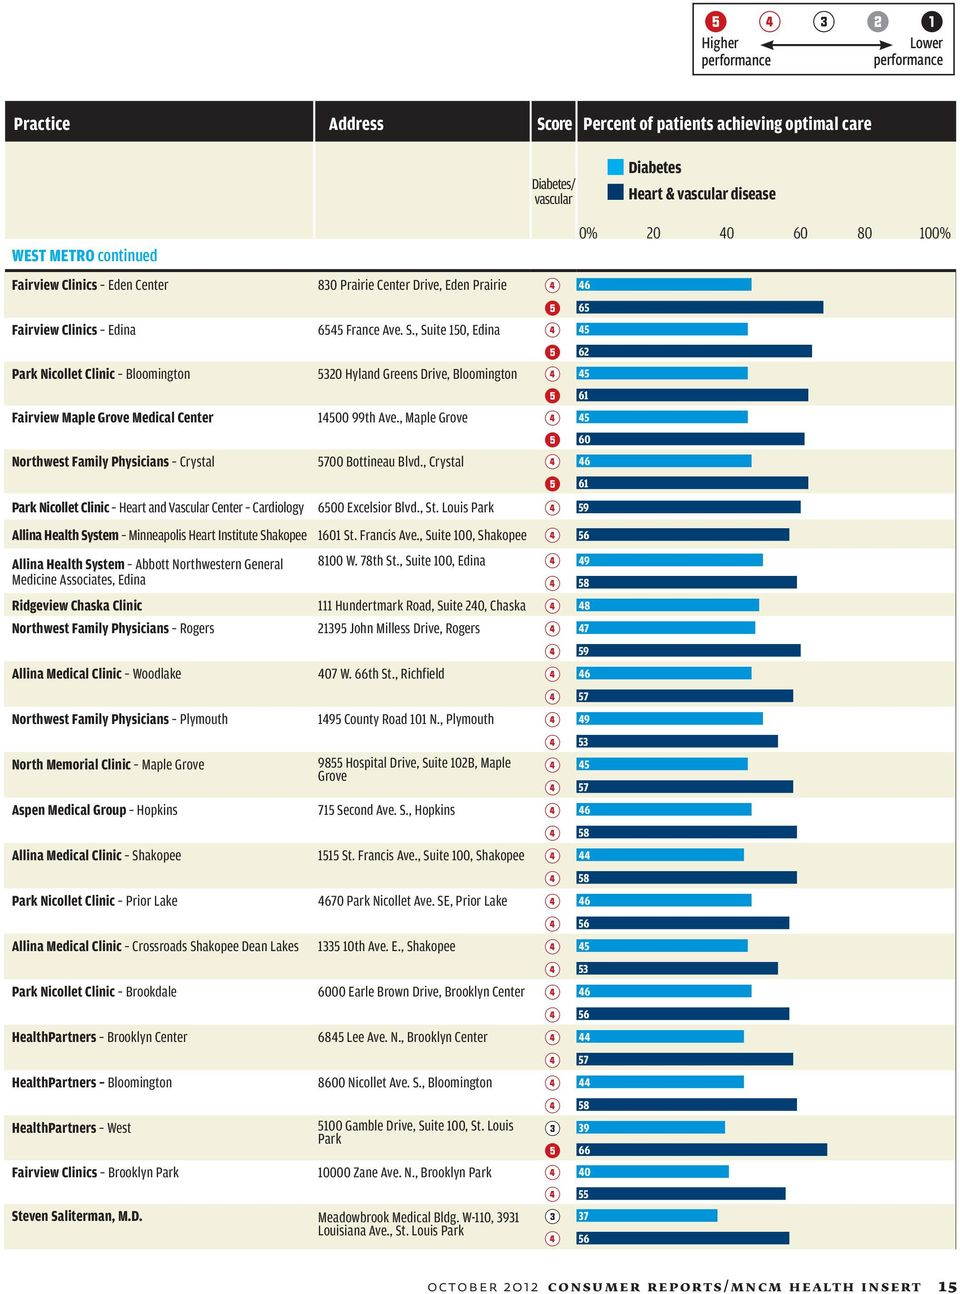 ratings of physician offices in minnesota Special Report for